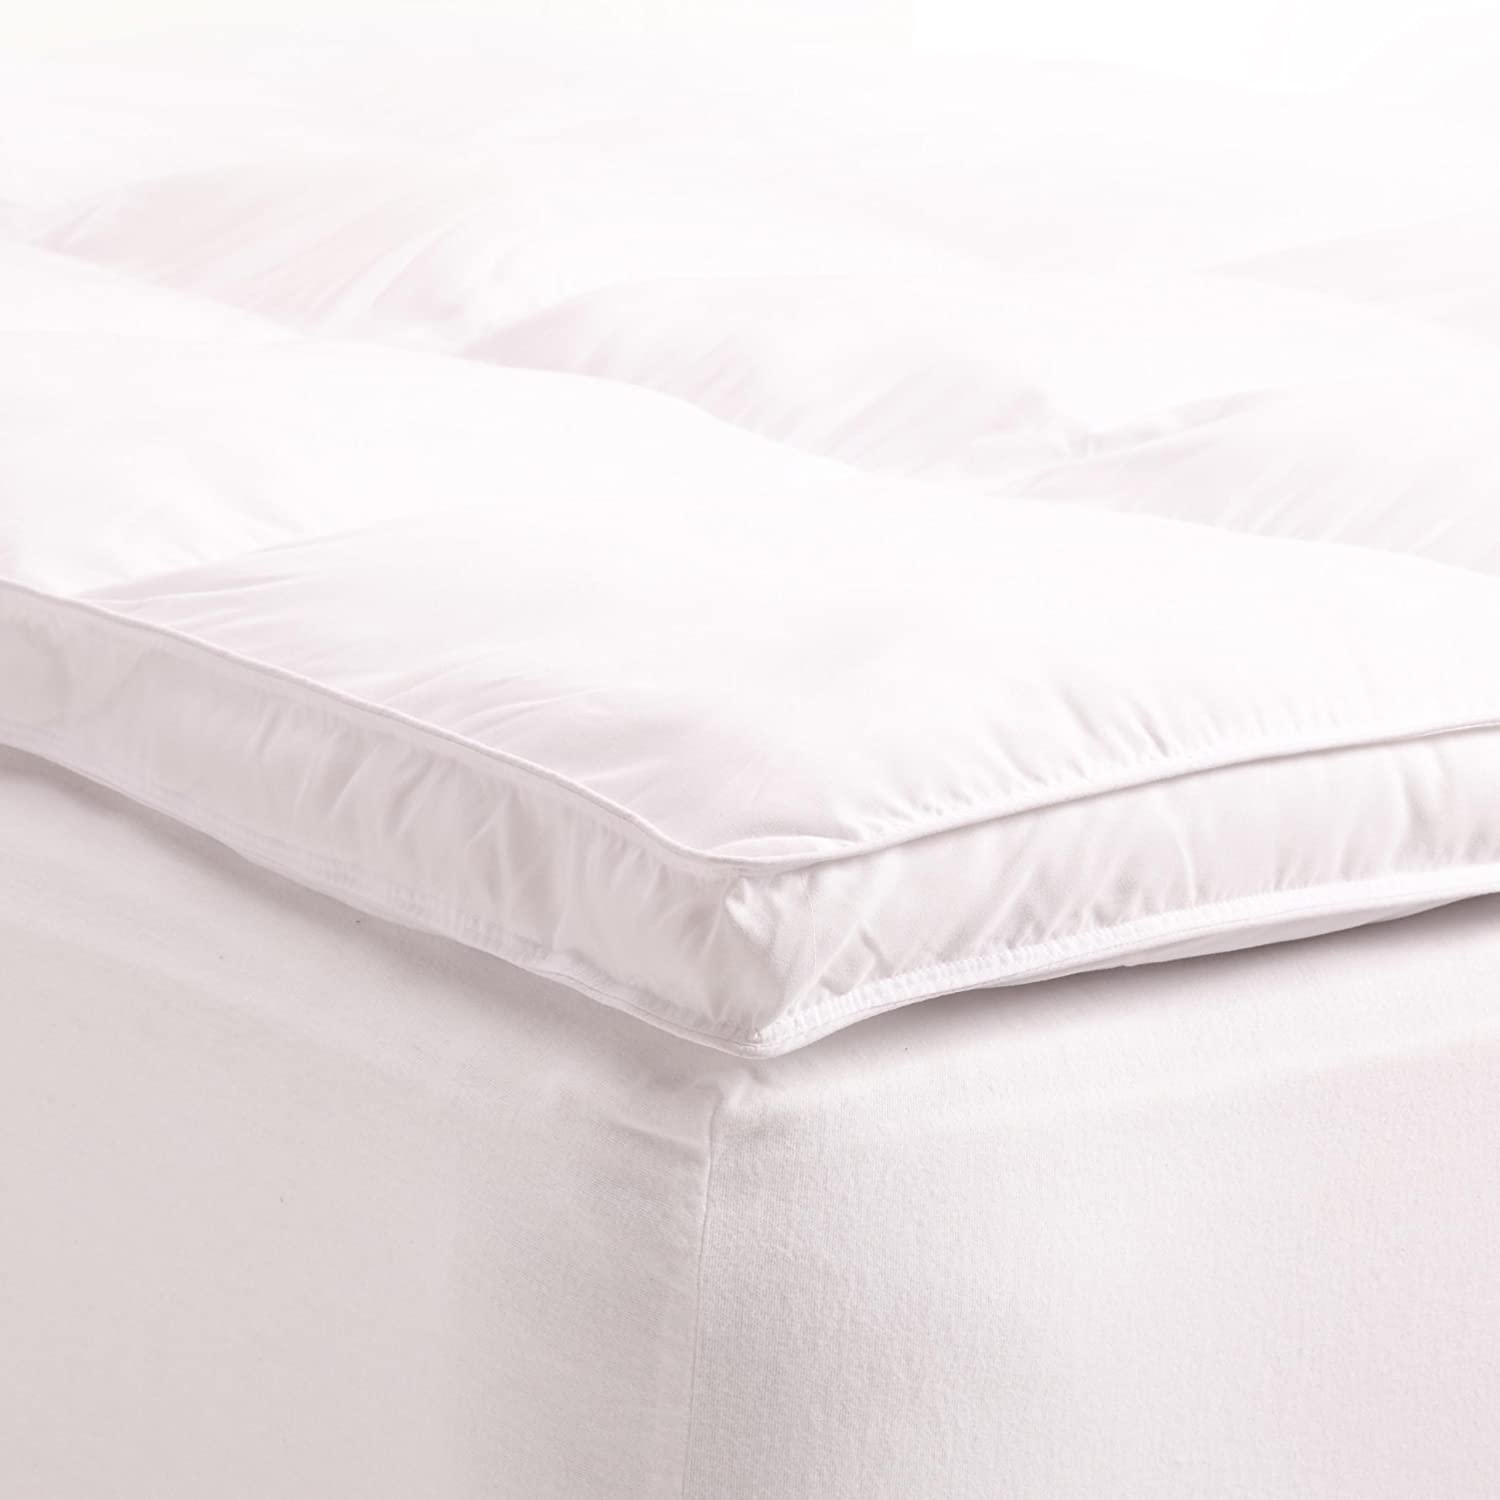 pillow topper your majestic furniture outlet top pacifica bedroom store product mattress